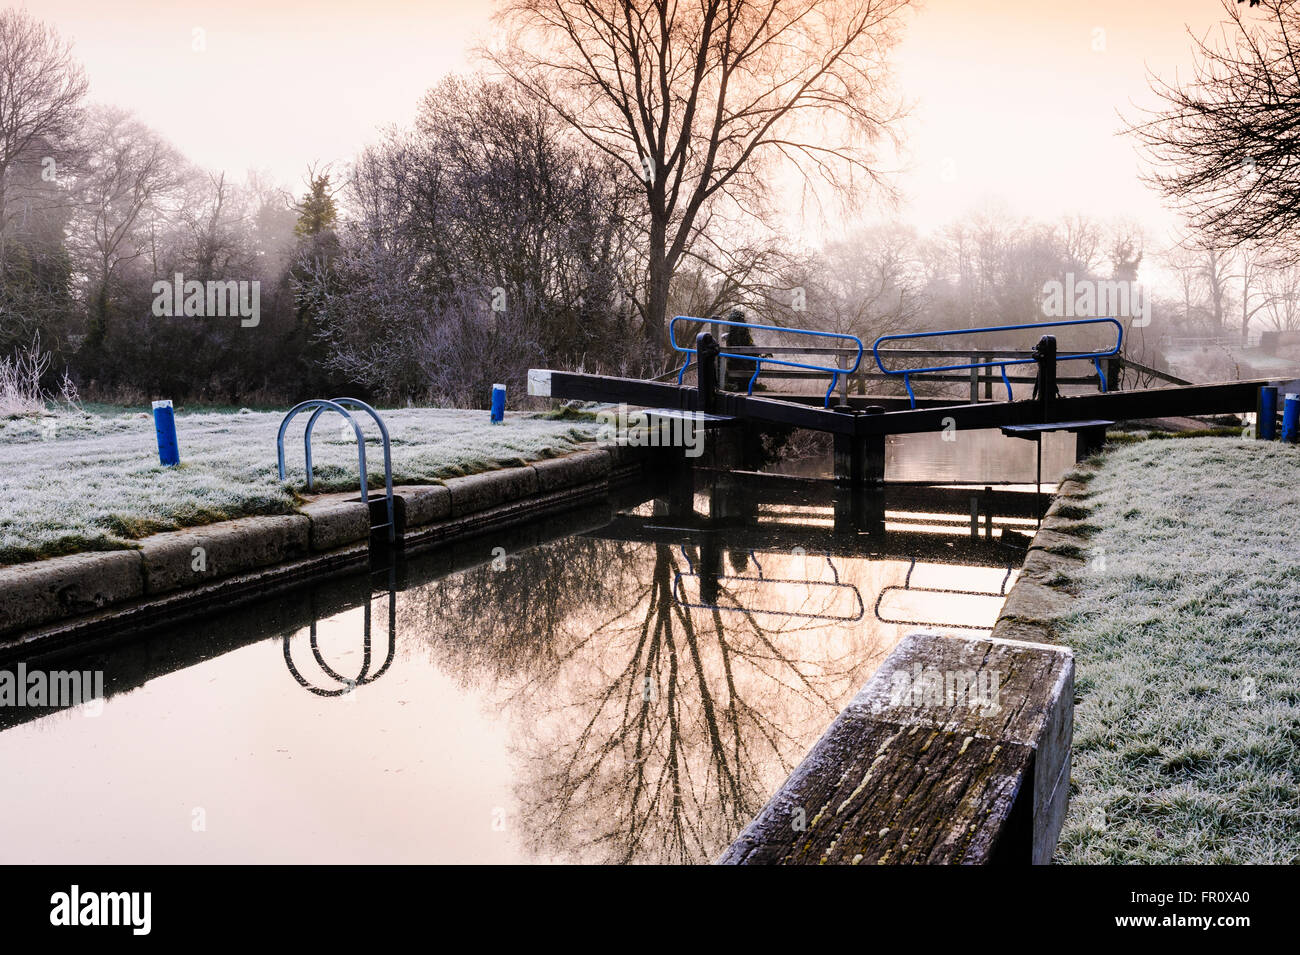 Canal lock gates on a very cold, frosty morning. - Stock Image